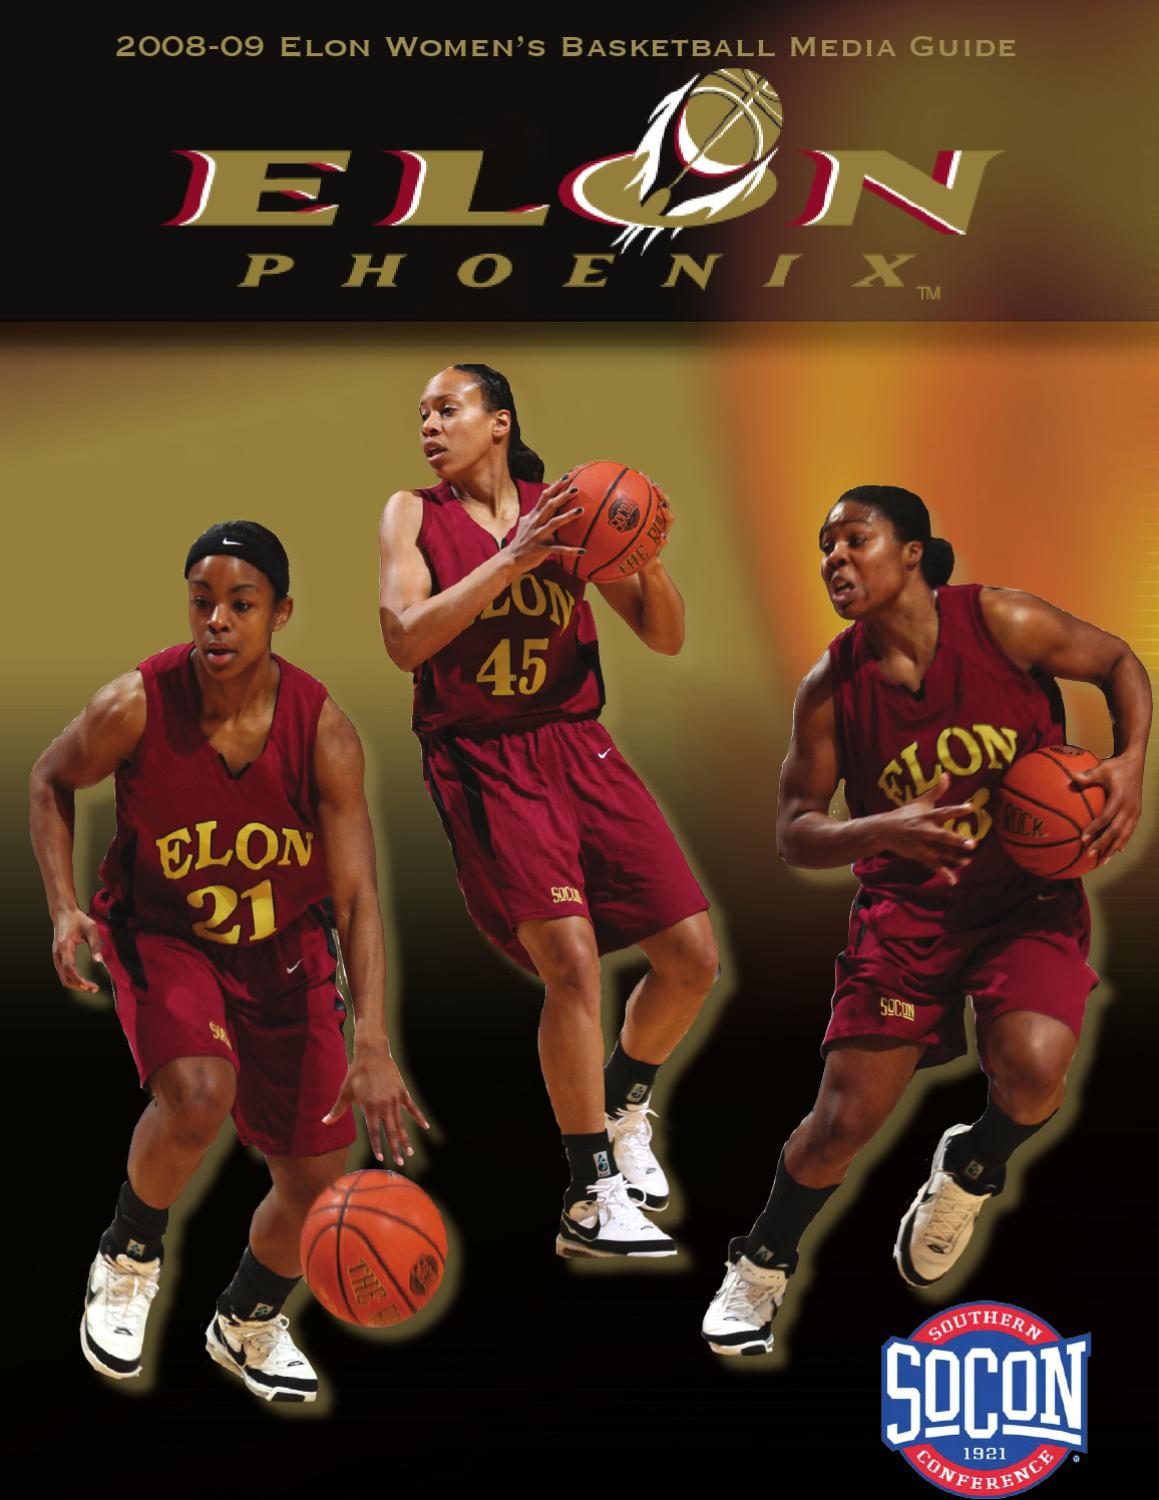 quality design 100f1 b26d2 Elon Women s Basketball Media Guide 2008-2009 by Chris Rash - issuu